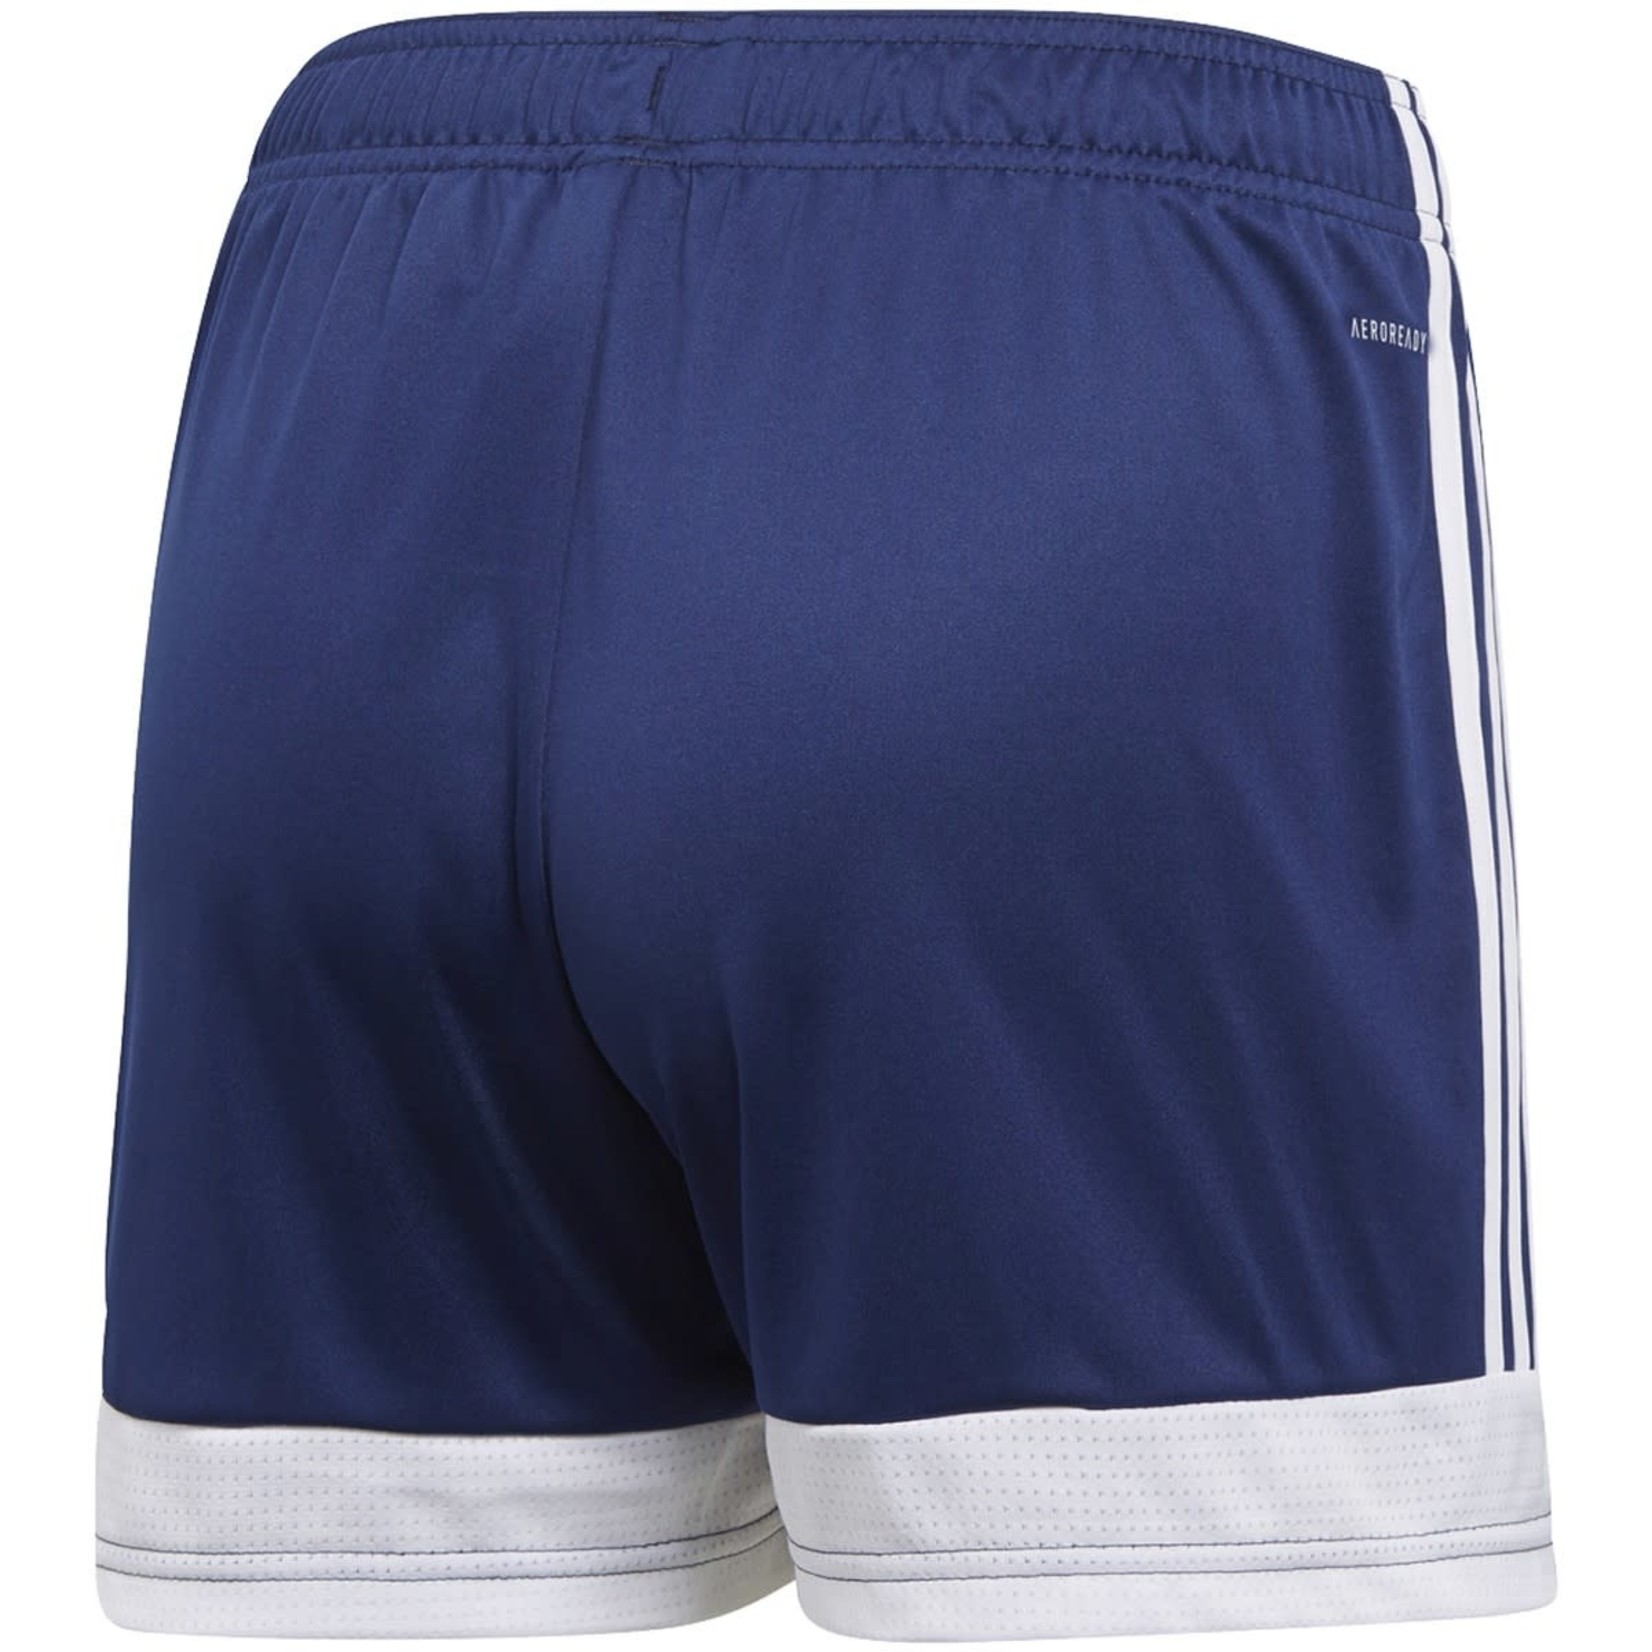 ADIDAS TASTIGO 19 SHORT WOMEN